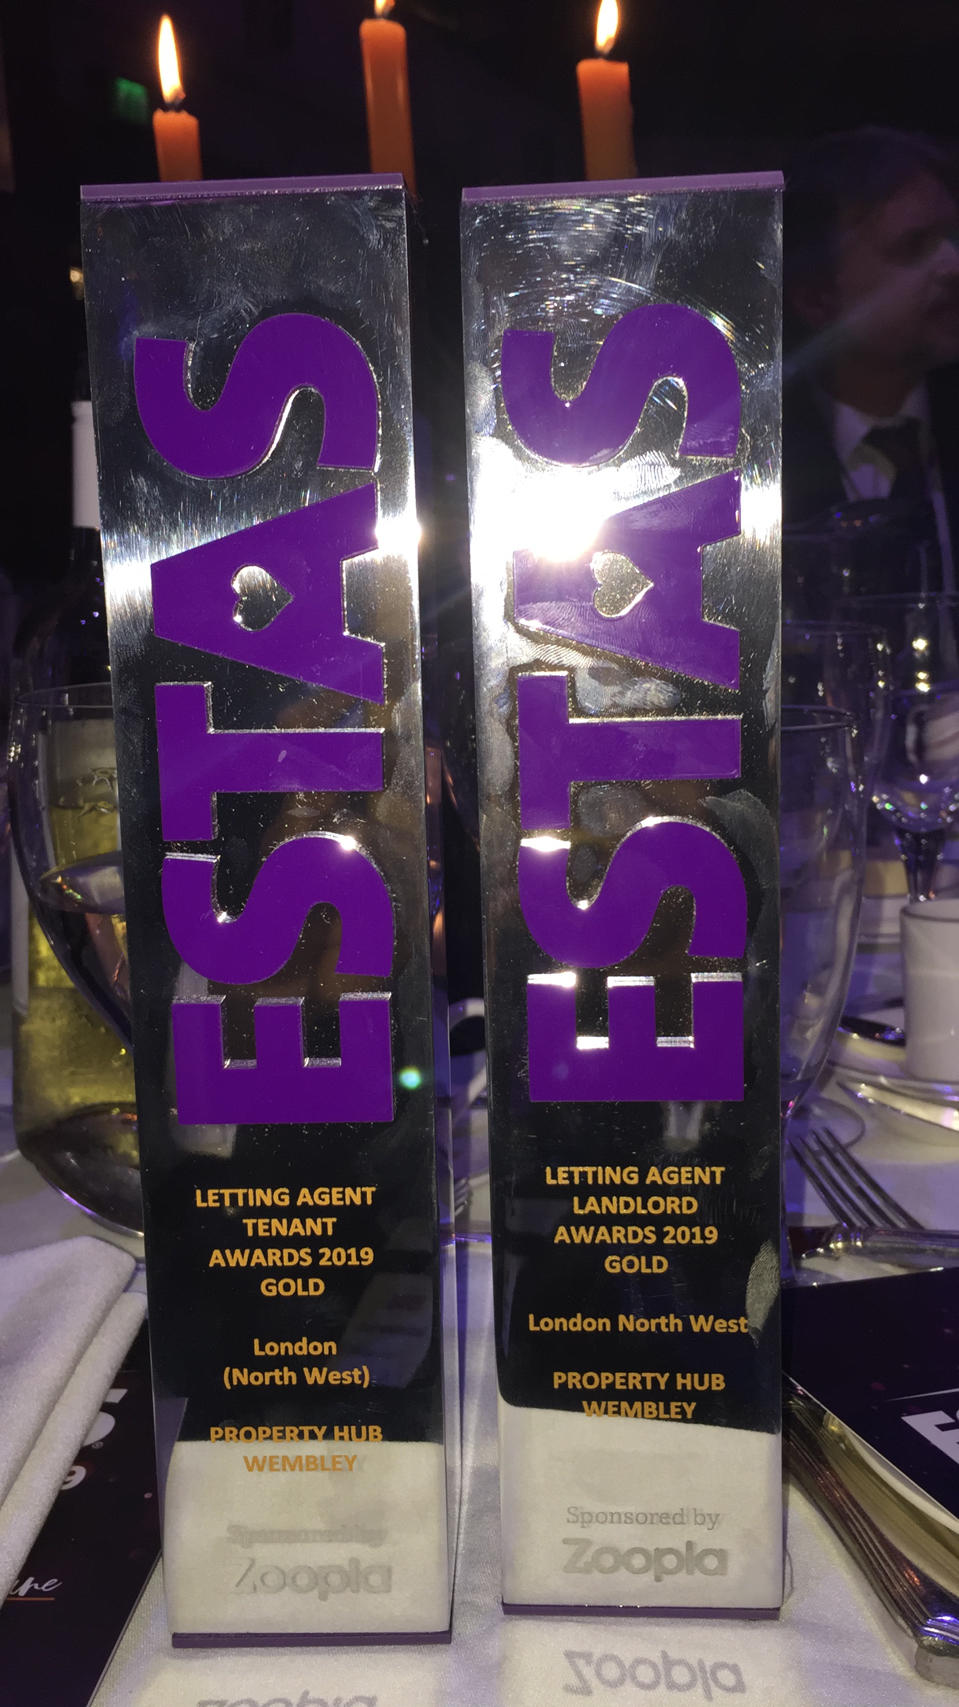 WINNERS OF ESTAS AWARD - LANDLORD & TENANT